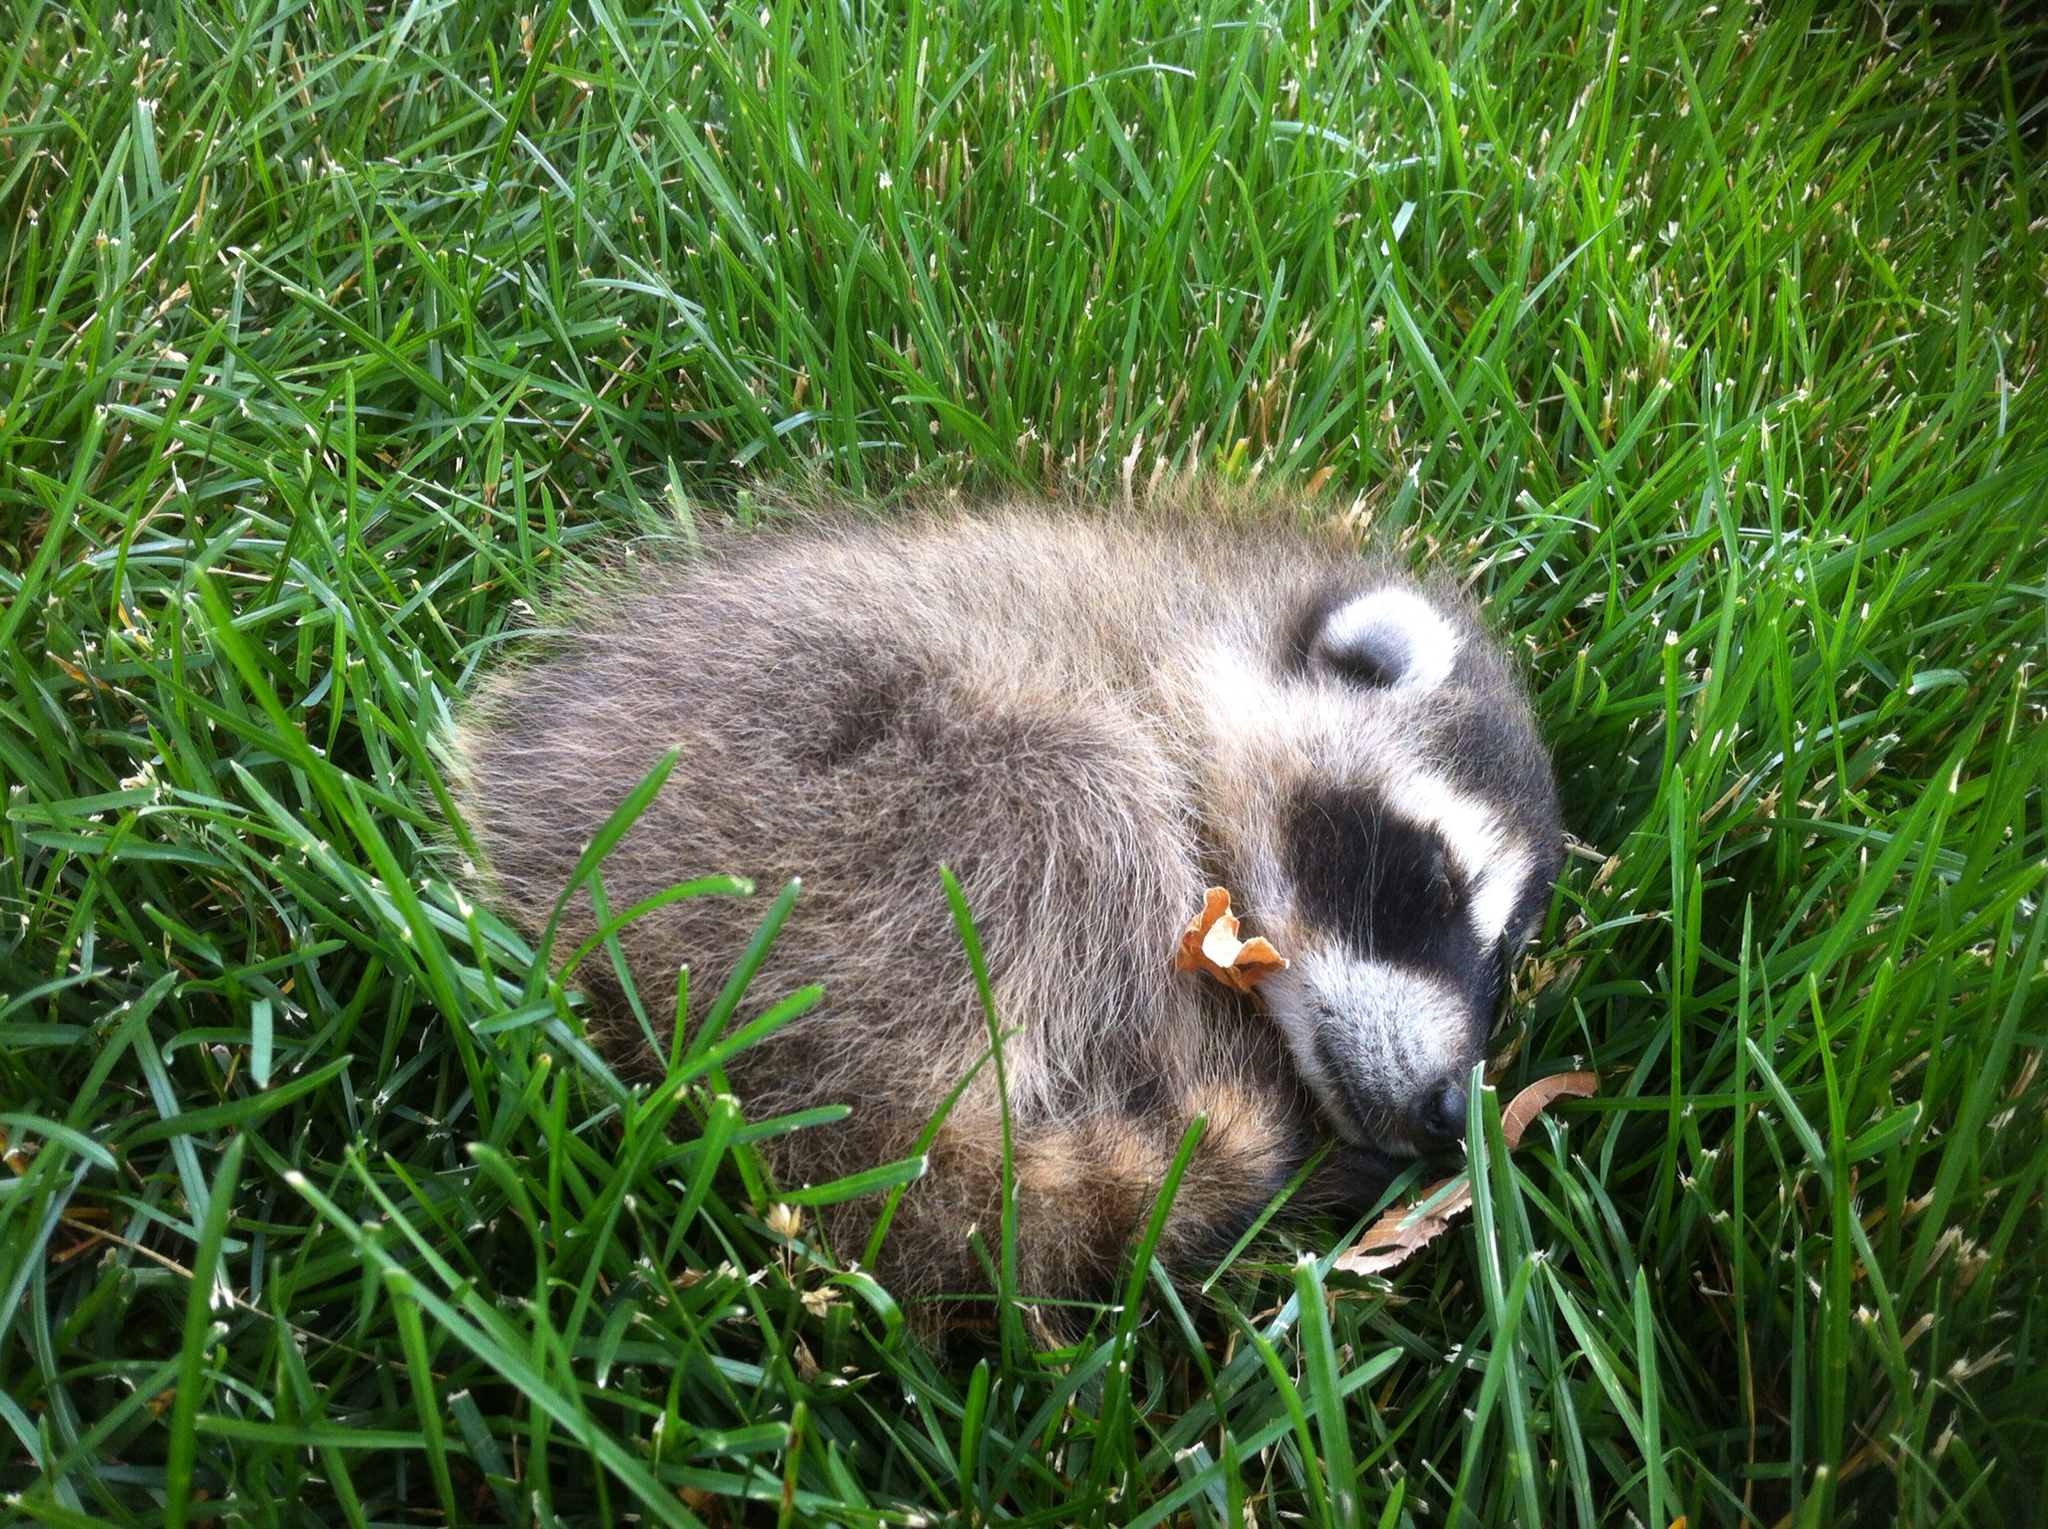 Nick and Rosemary's Blog: Baby Raccoon in our backyard